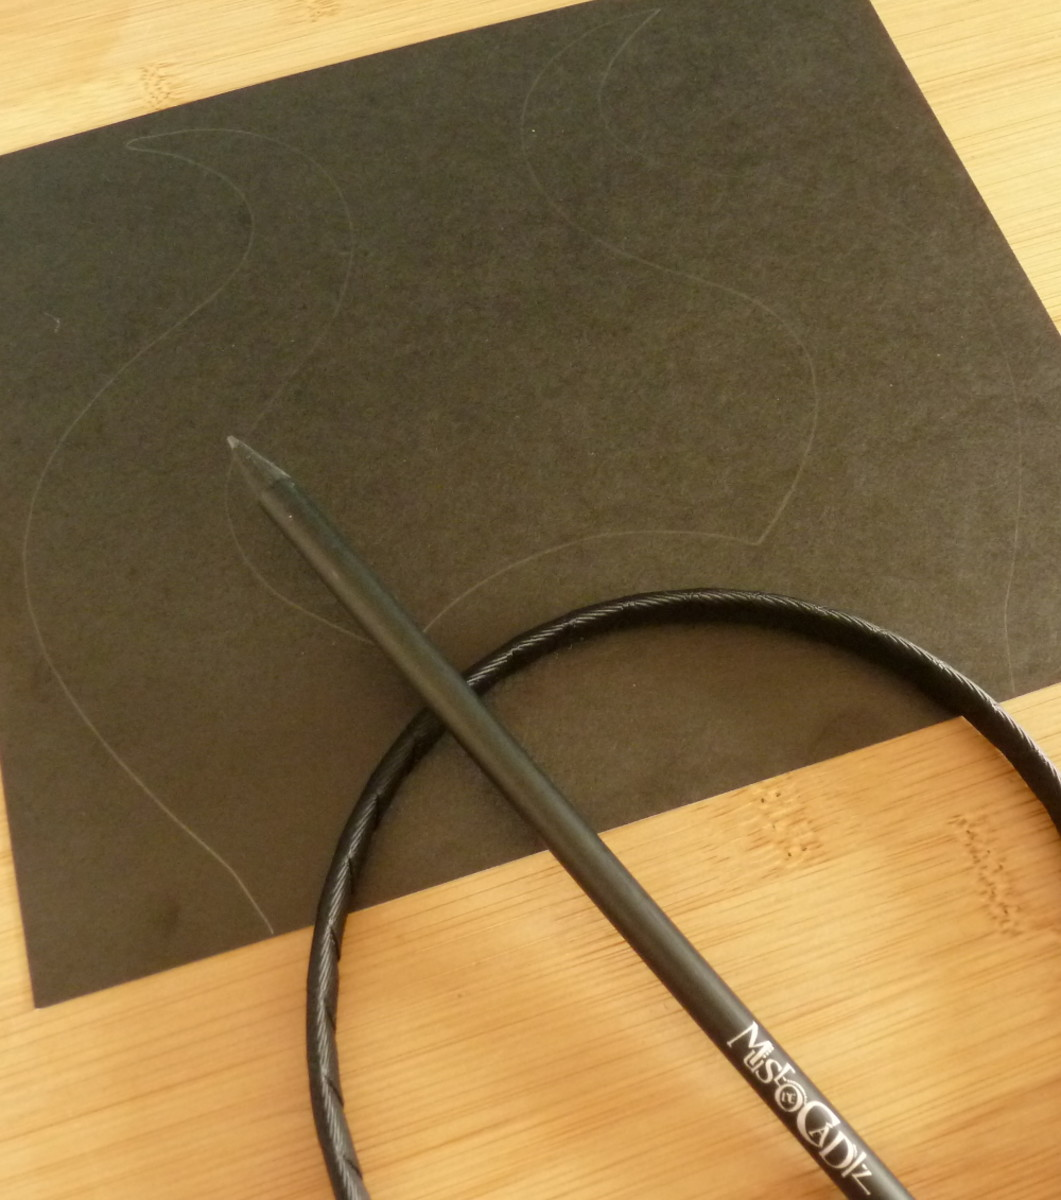 Tracing around the template design onto black card with a pencil